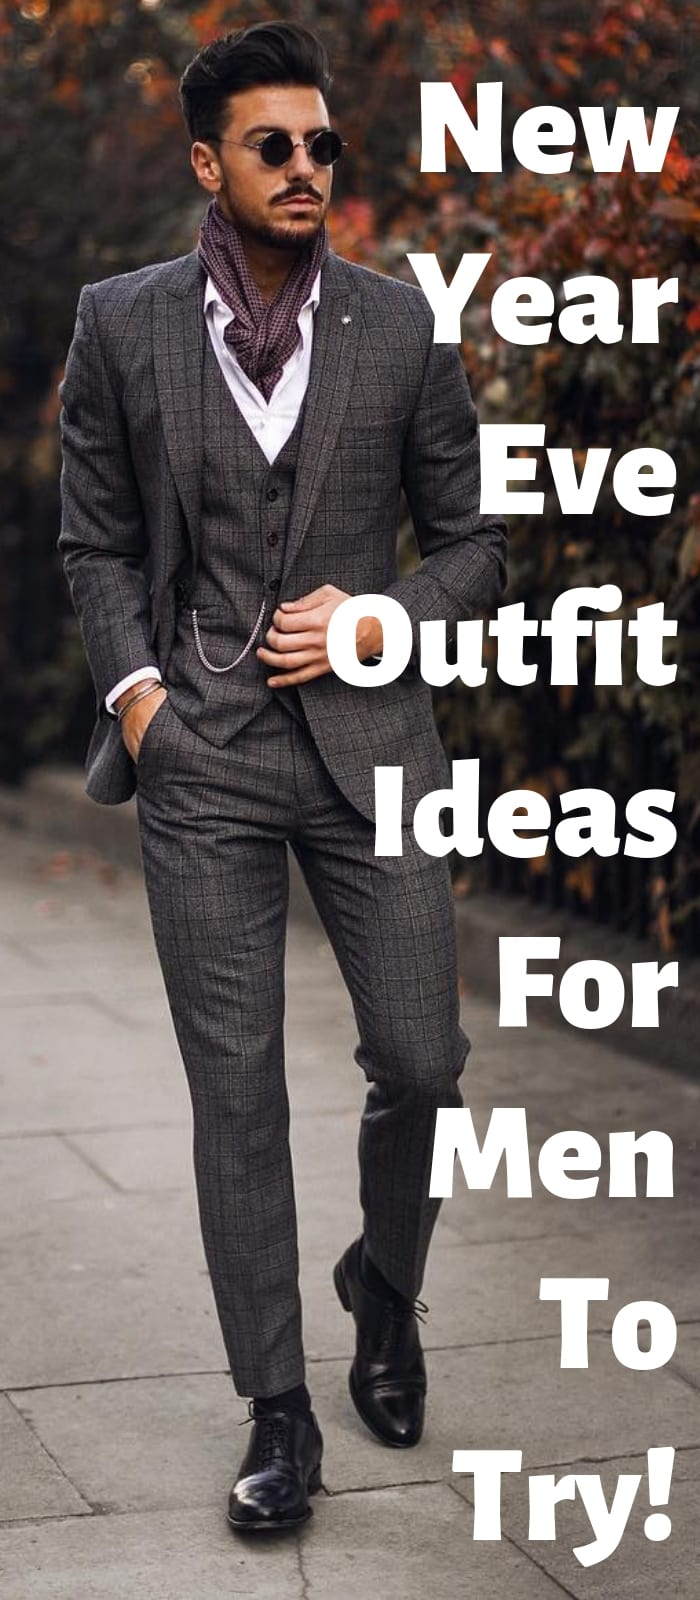 New Year Eve Outfit Ideas For Men To Try